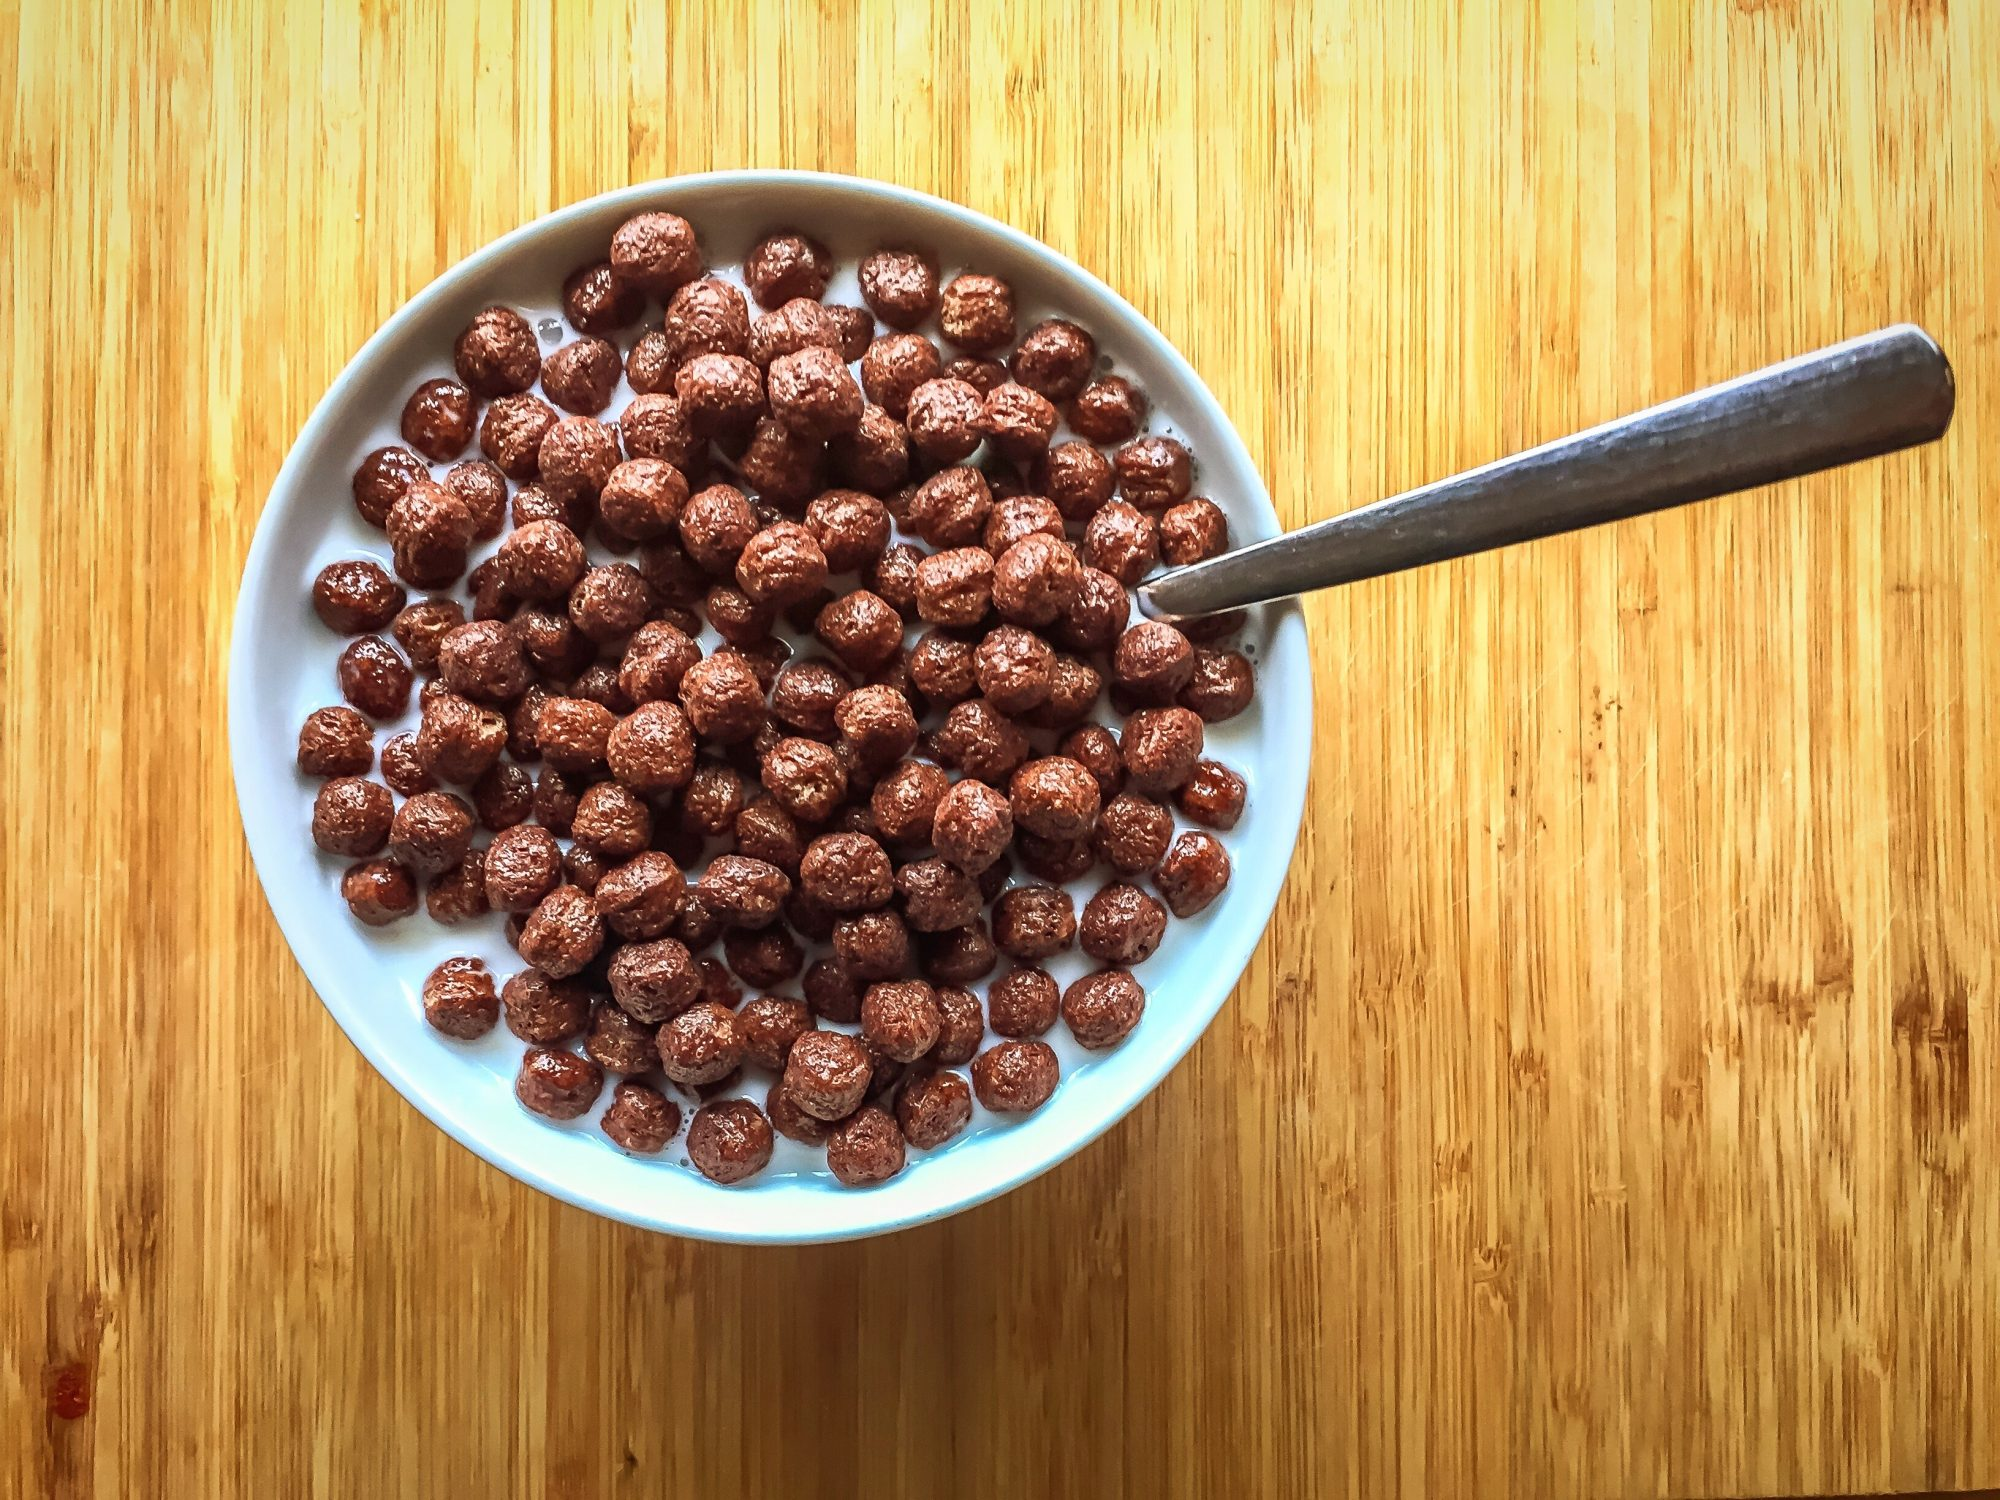 chocolate_cereal_getty.jpg